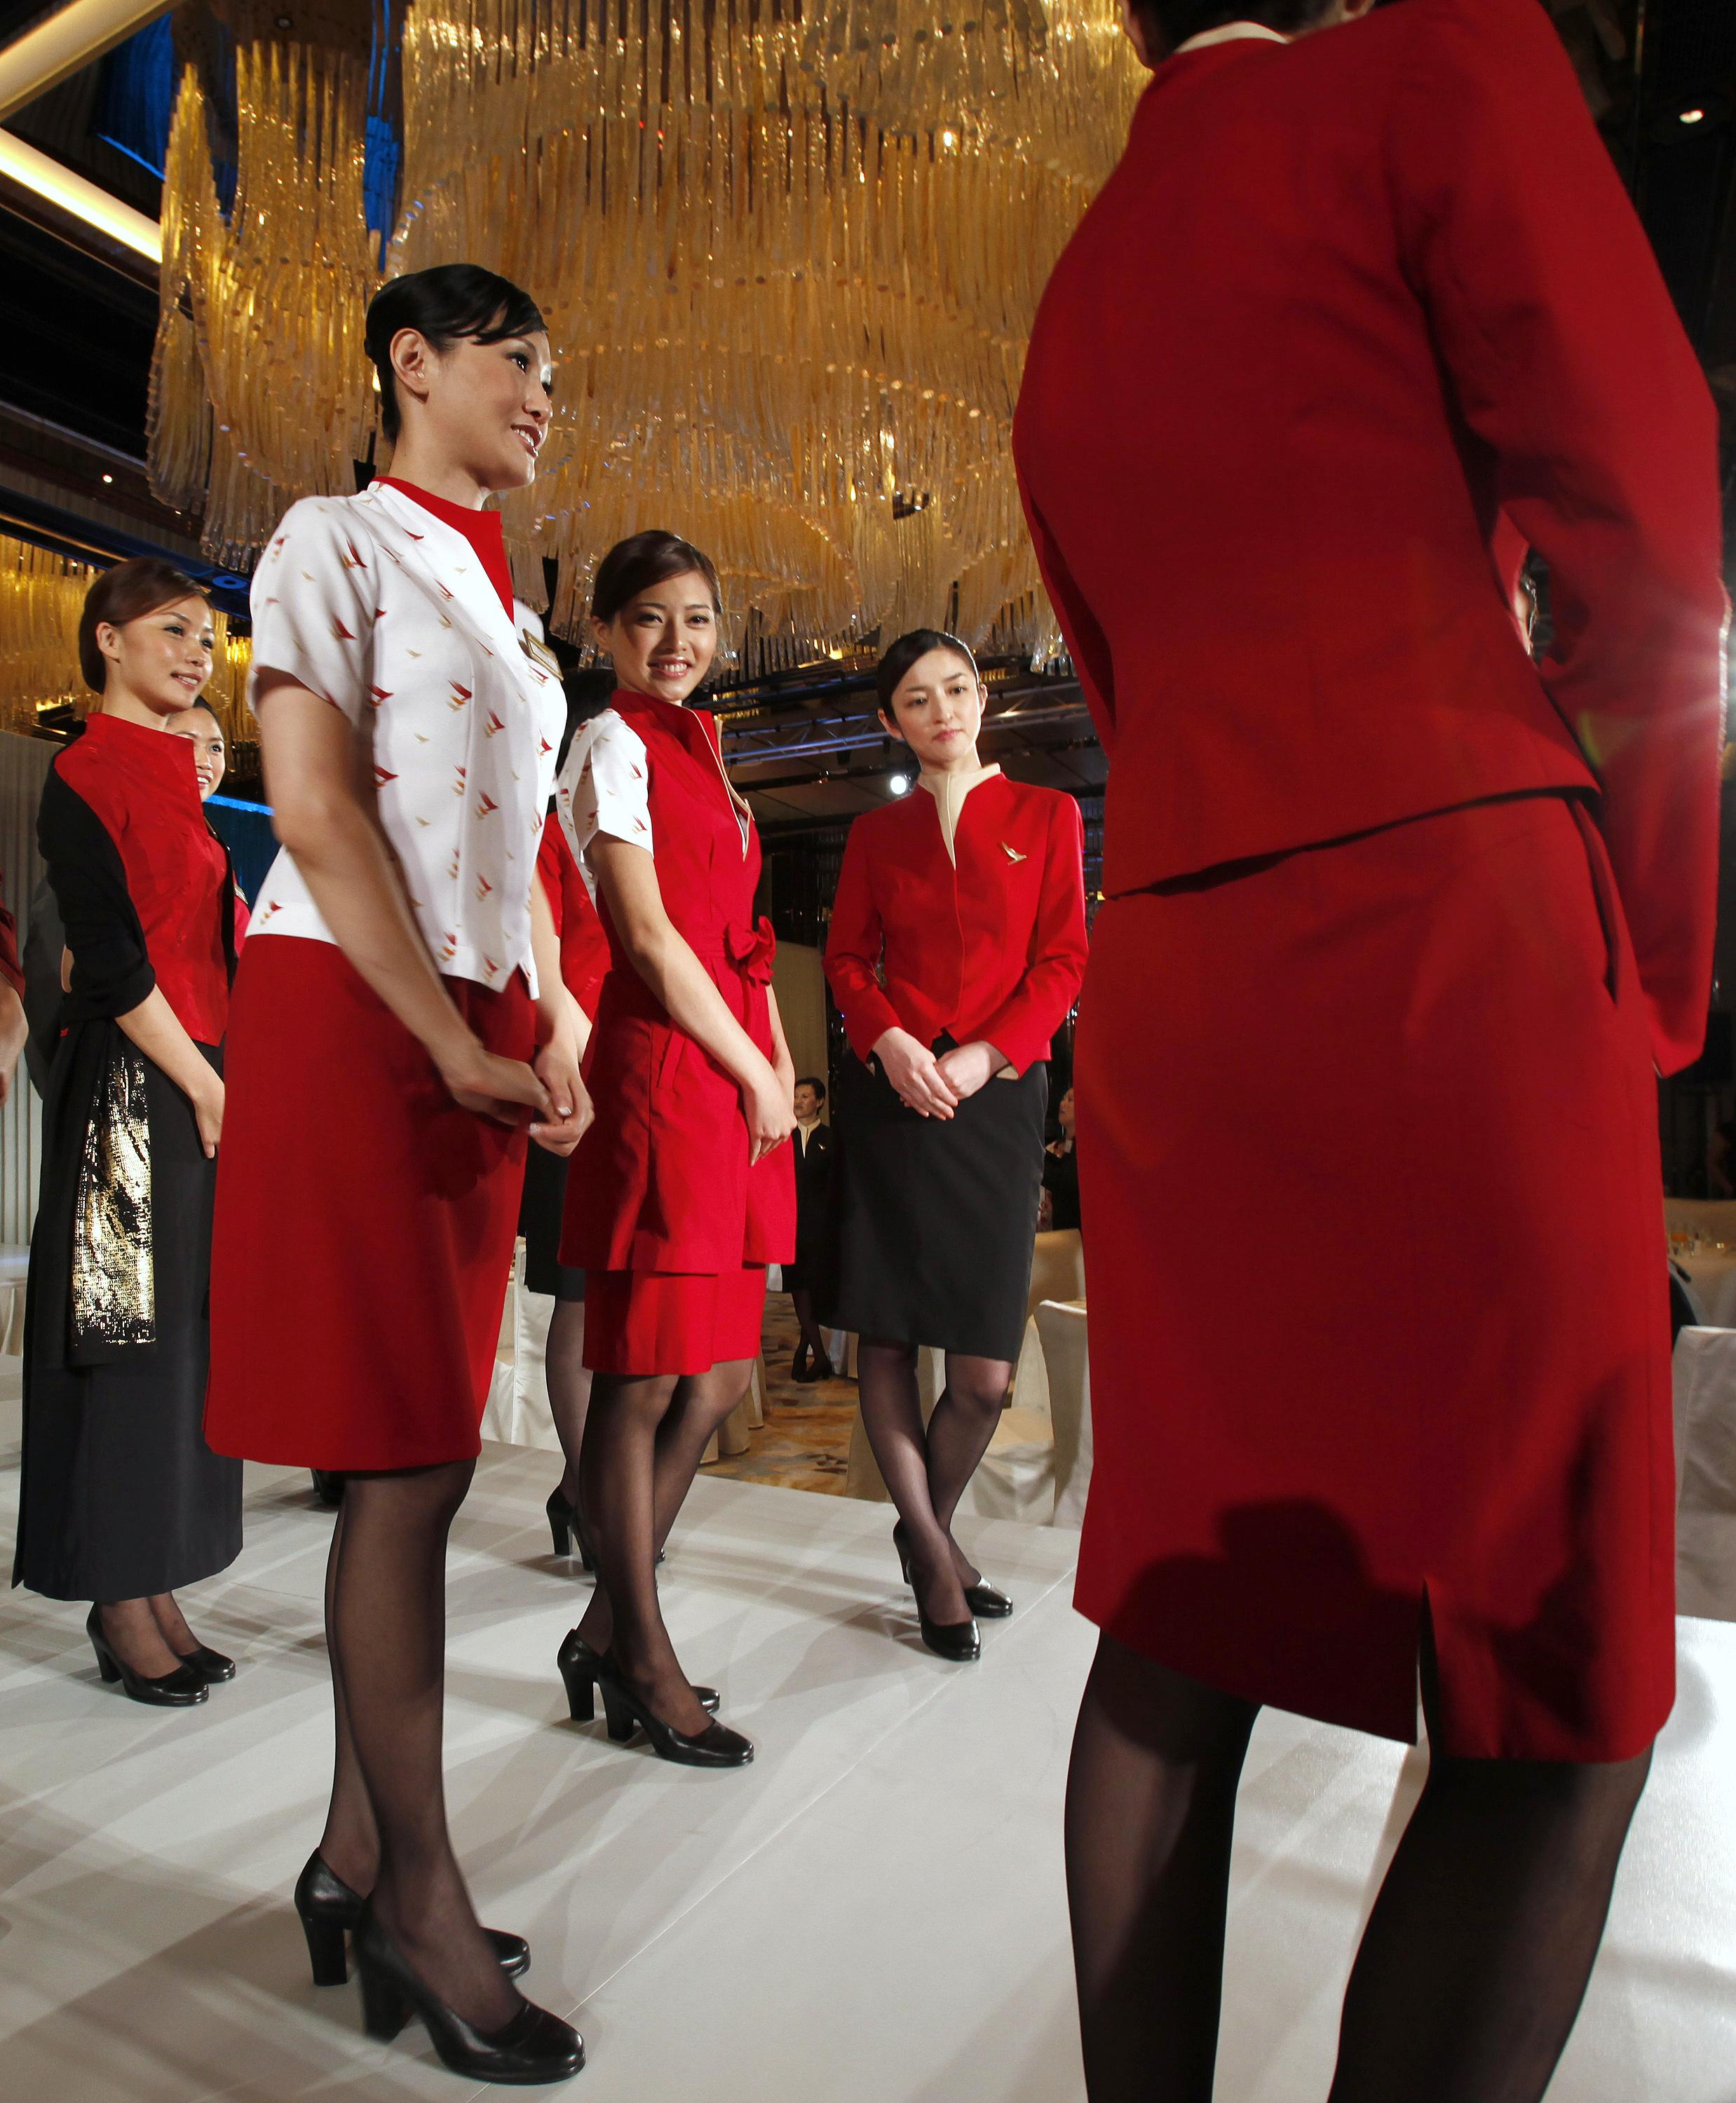 Cathay Pacific - A Day in the Life of a Flight Attendant